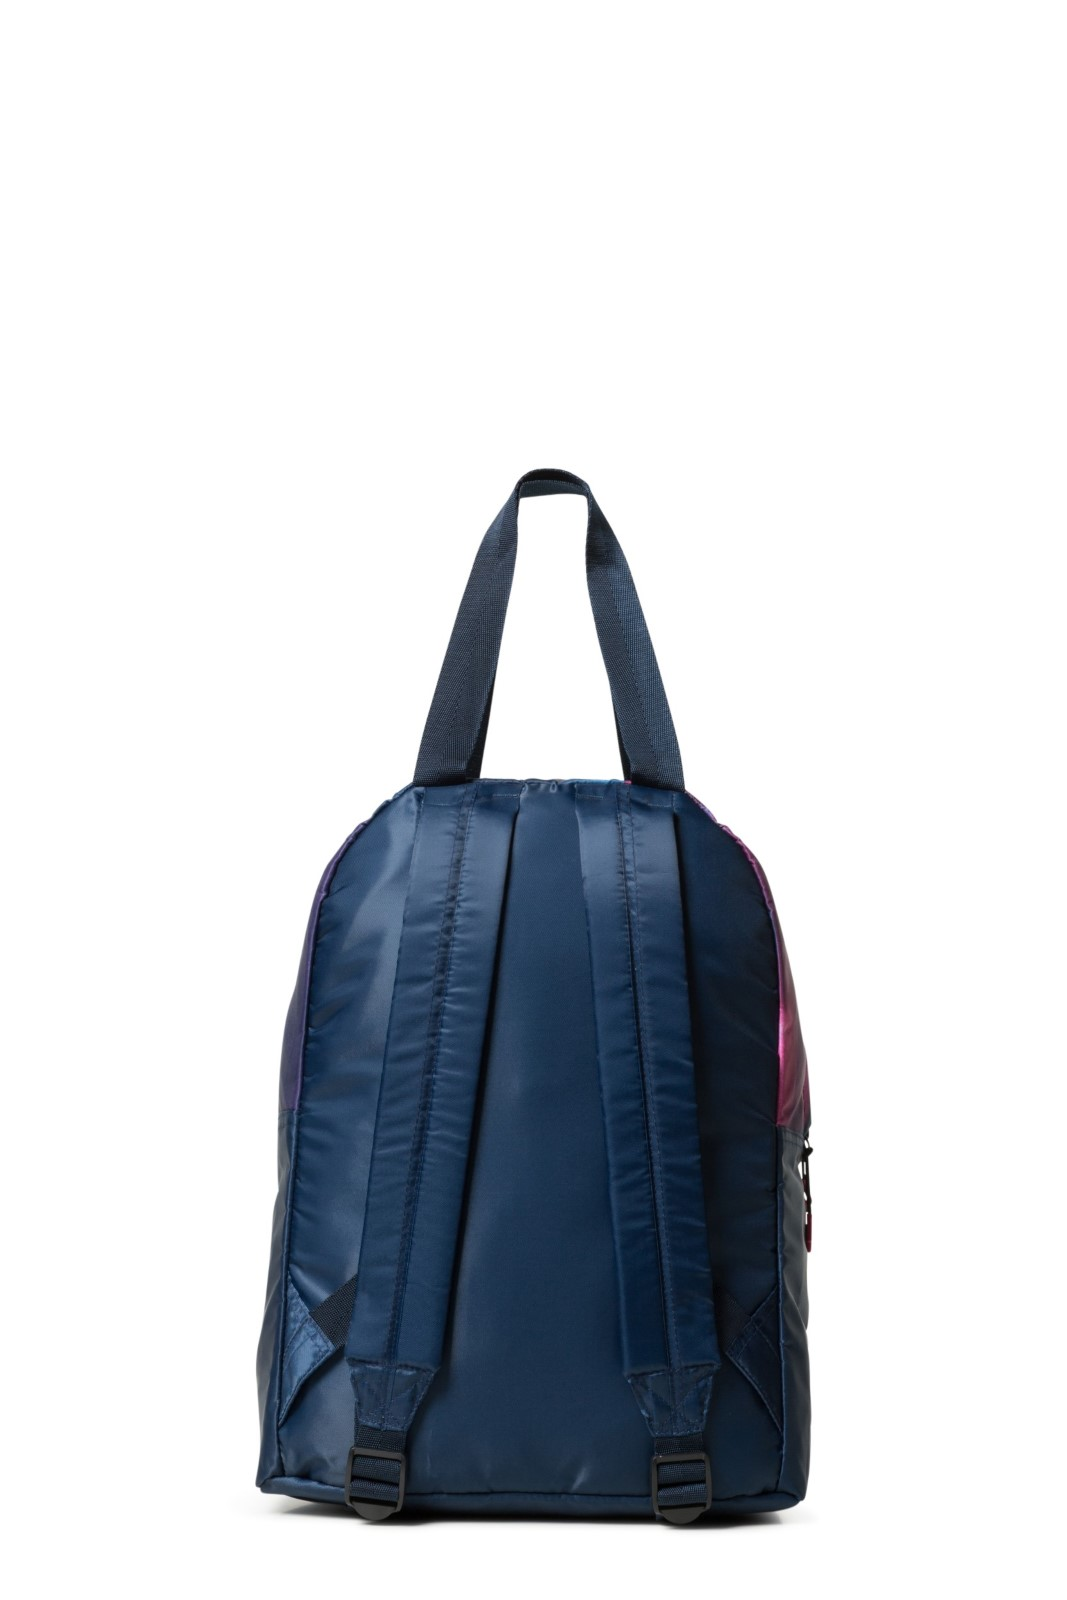 Desigual blue backpack Bols School Bag Arty